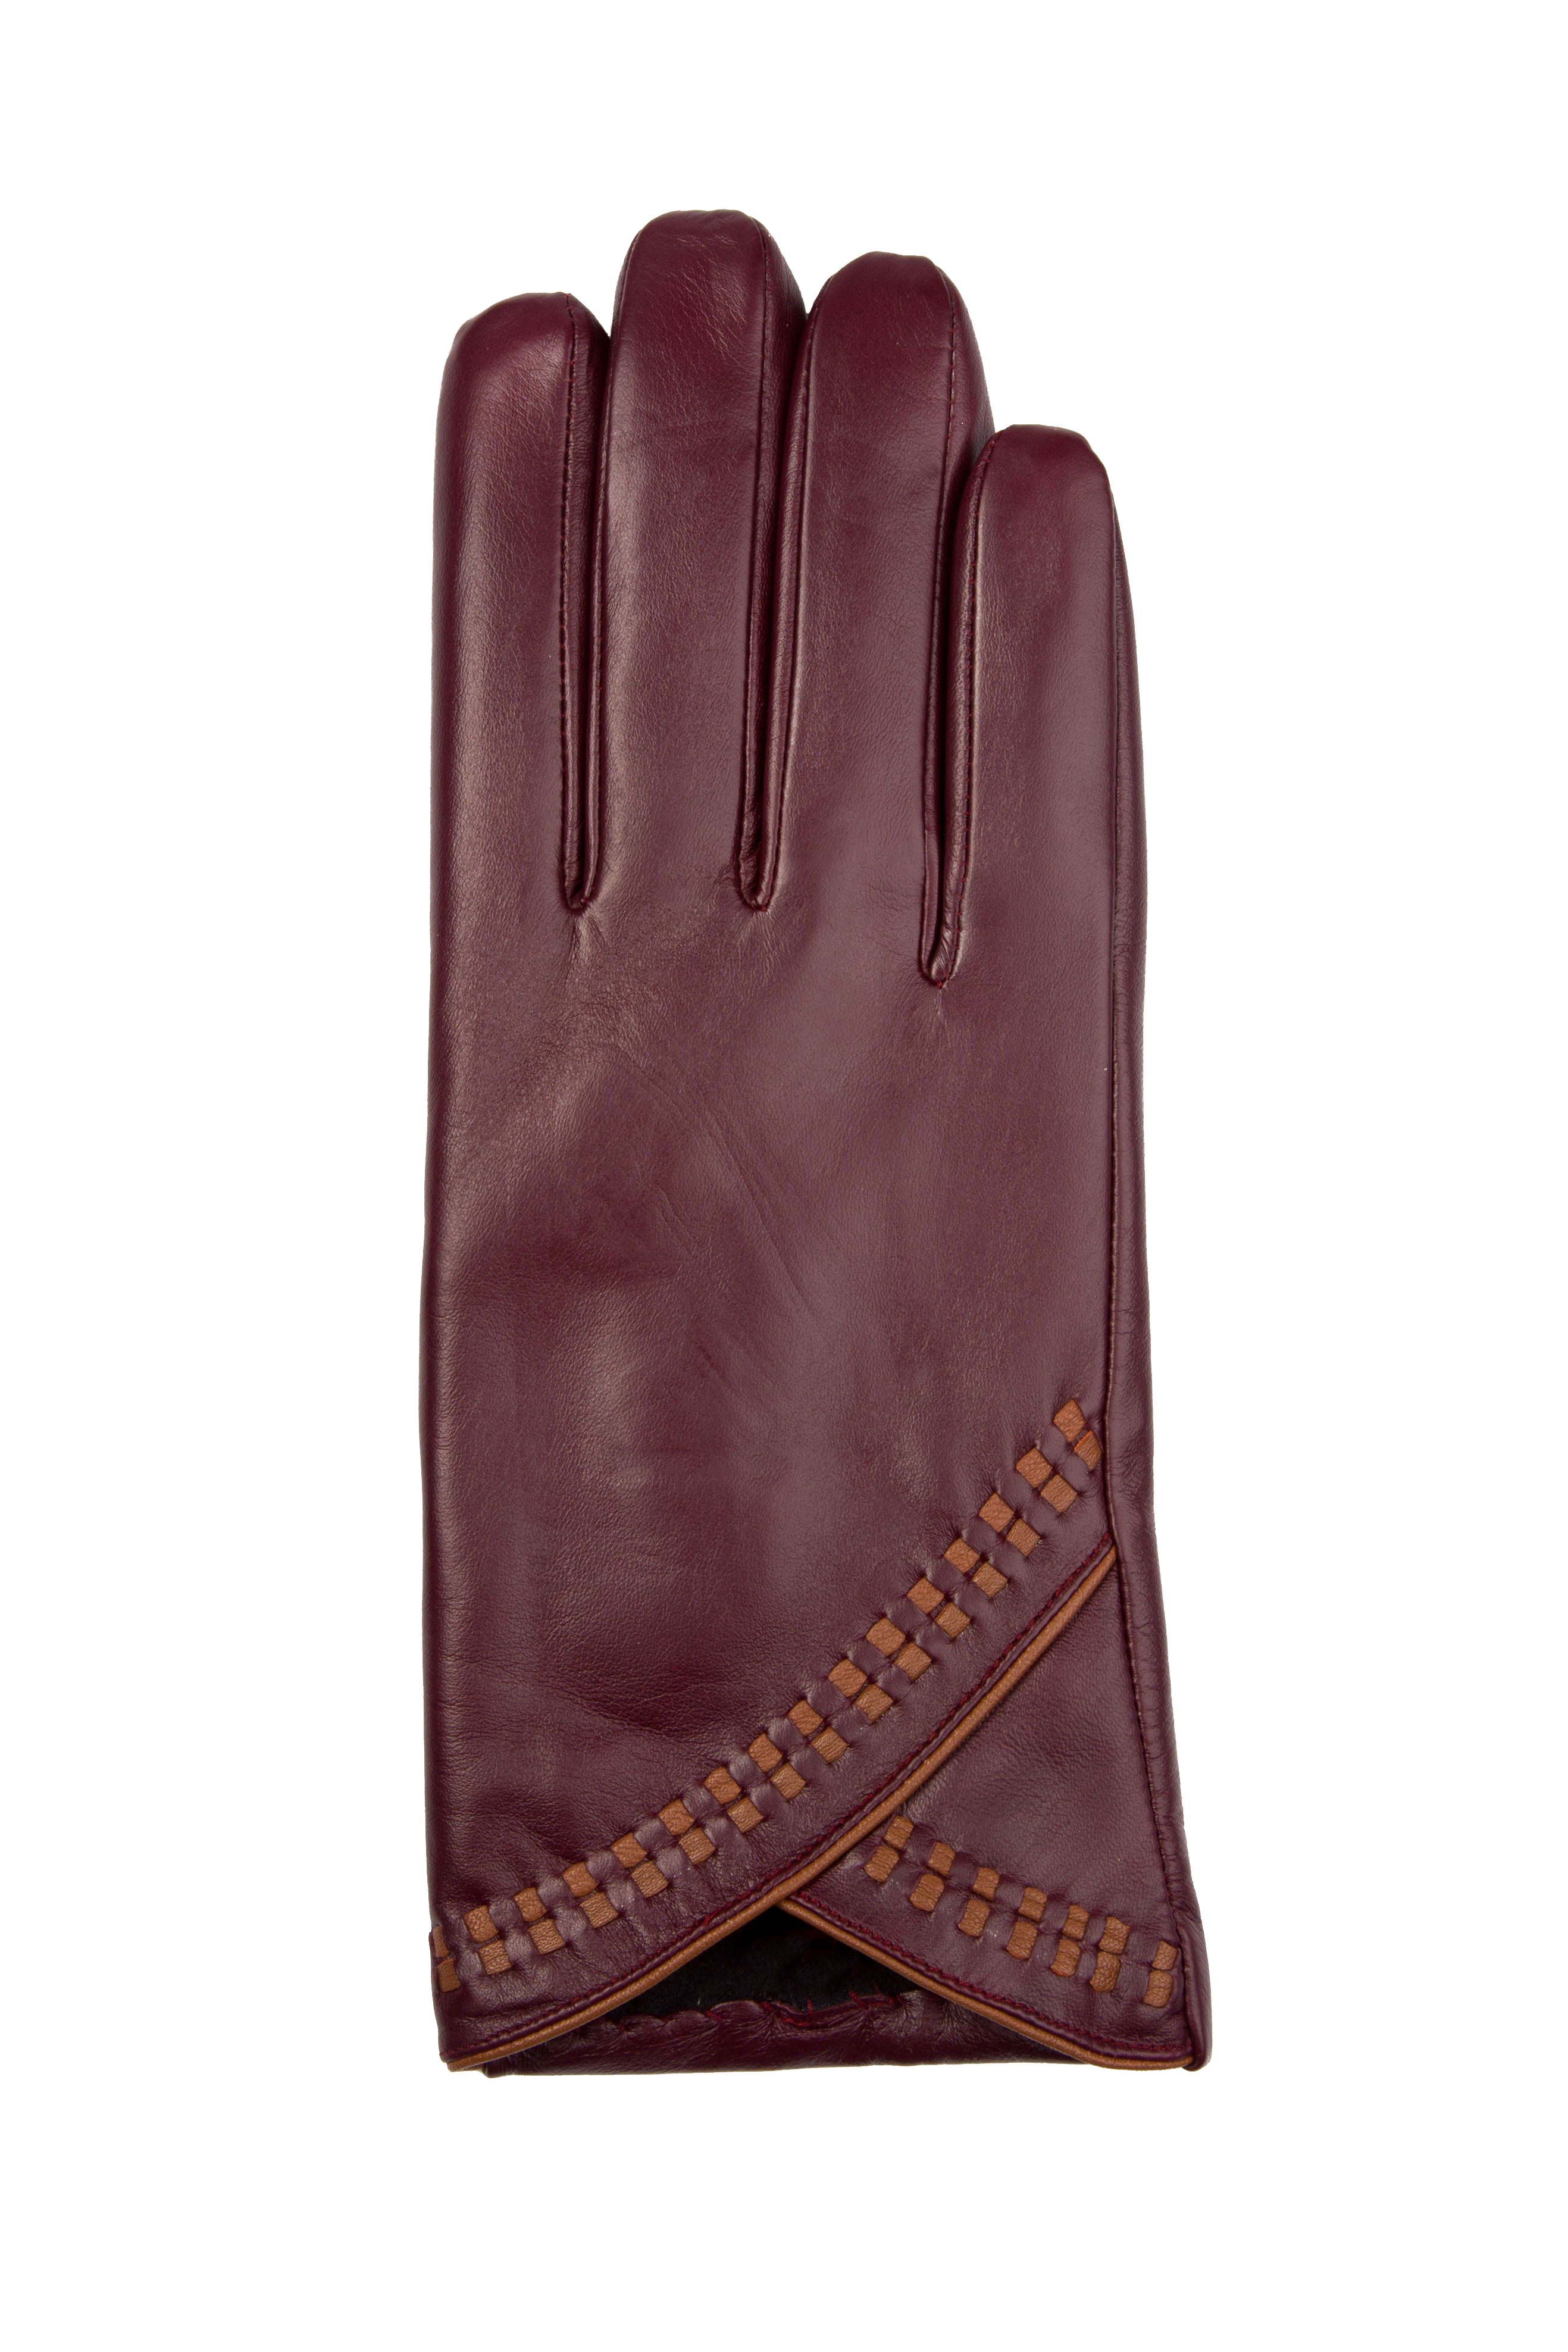 Perfect The Clarets  Womens Leather Dress Gloves With Long Fingers